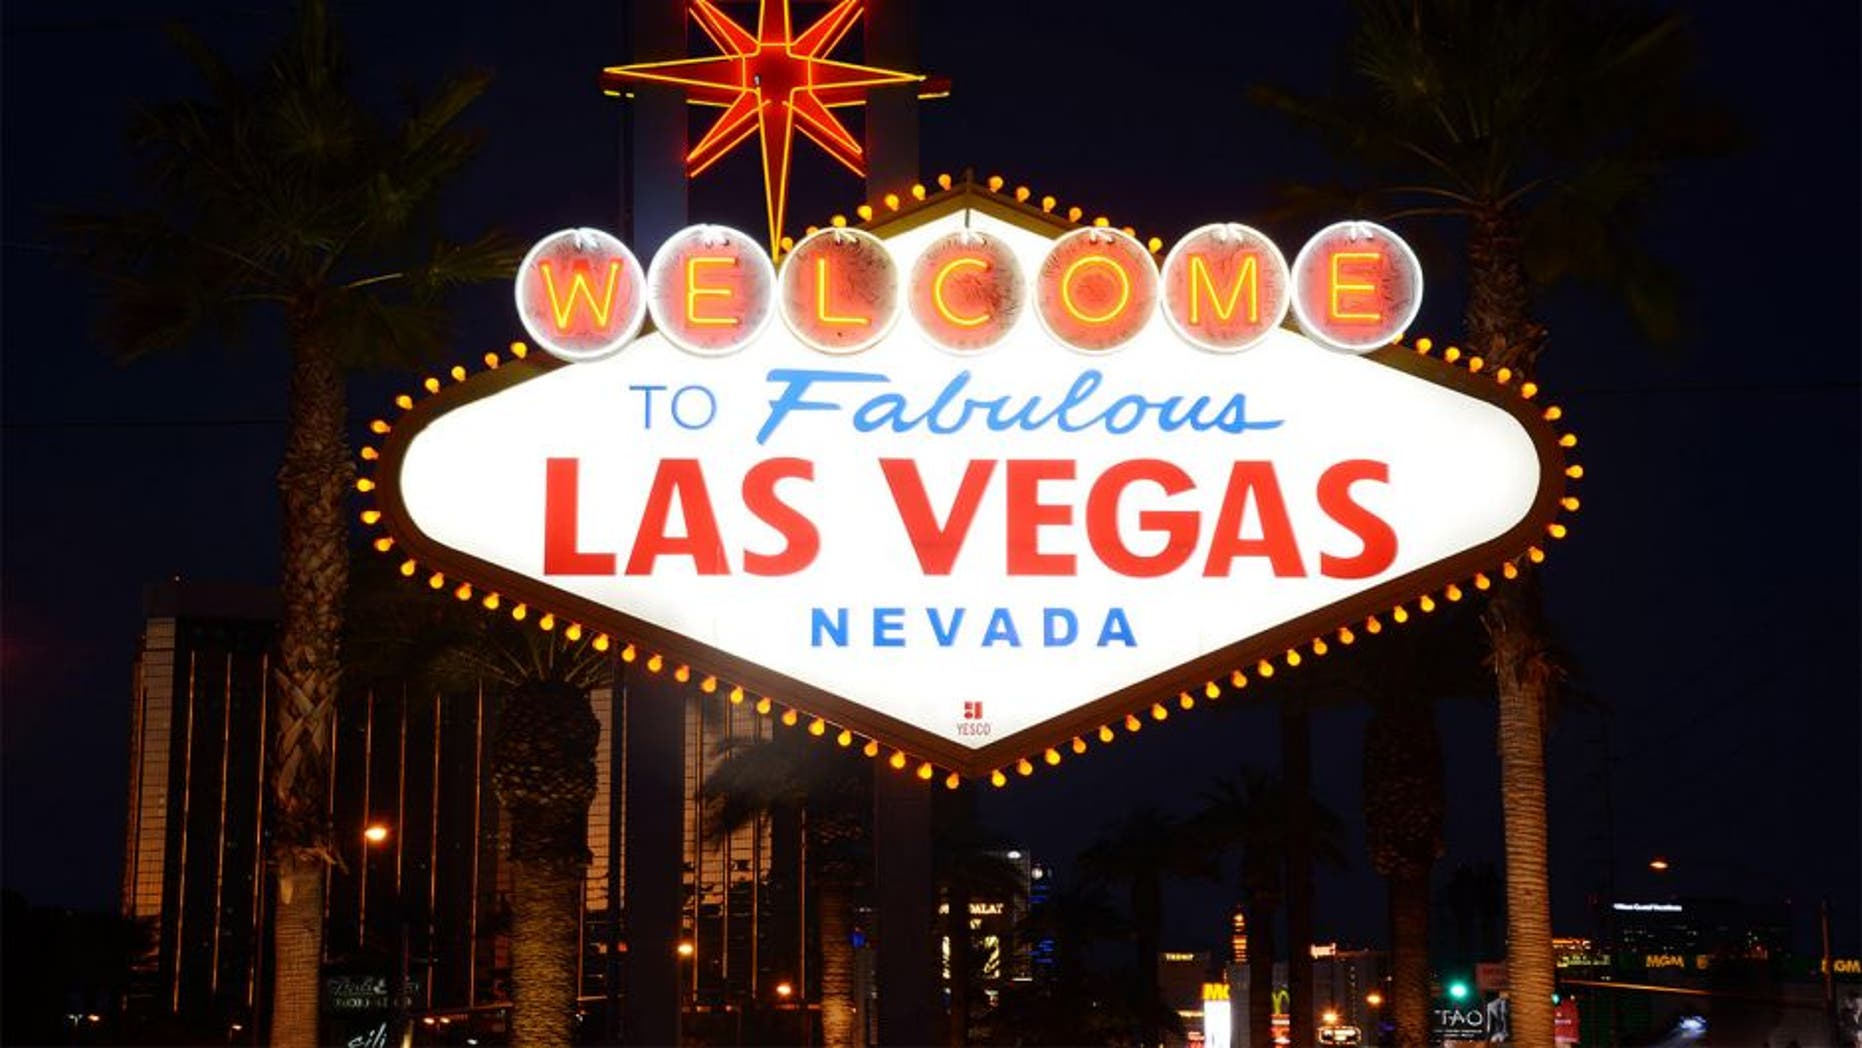 Dec 21, 2013; Las Vegas, NV, USA; General view of the Welcome to Fabulous Las Vegas sign on Las Vegas Blvd. before the Las Vegas Bowl between the Fresno State Bulldogs and the Southern California Trojans. Mandatory Credit: Kirby Lee-USA TODAY Sports